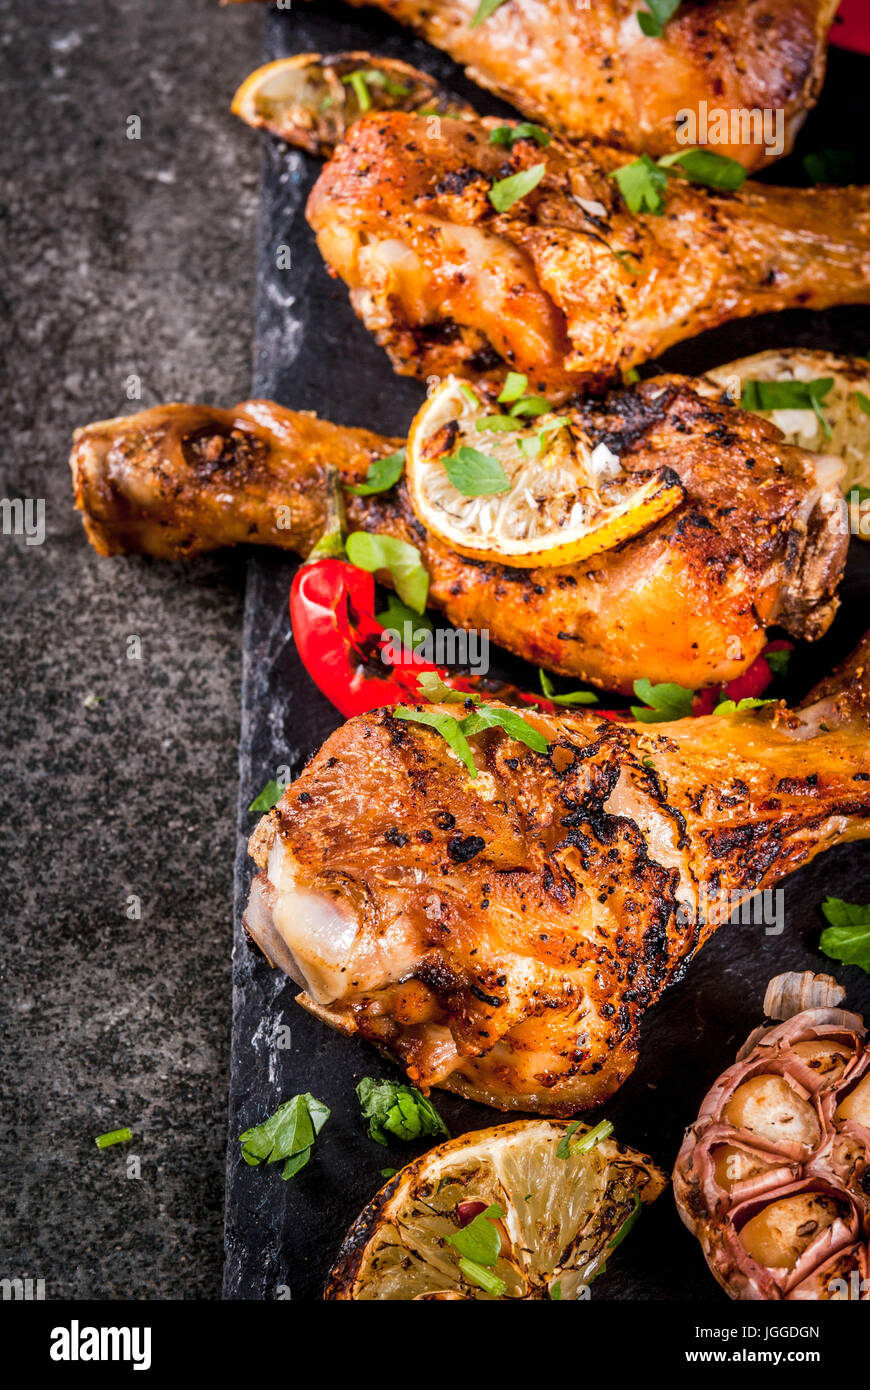 Summer Food Ideas For Barbecue Grill Party Chicken Legs Wings